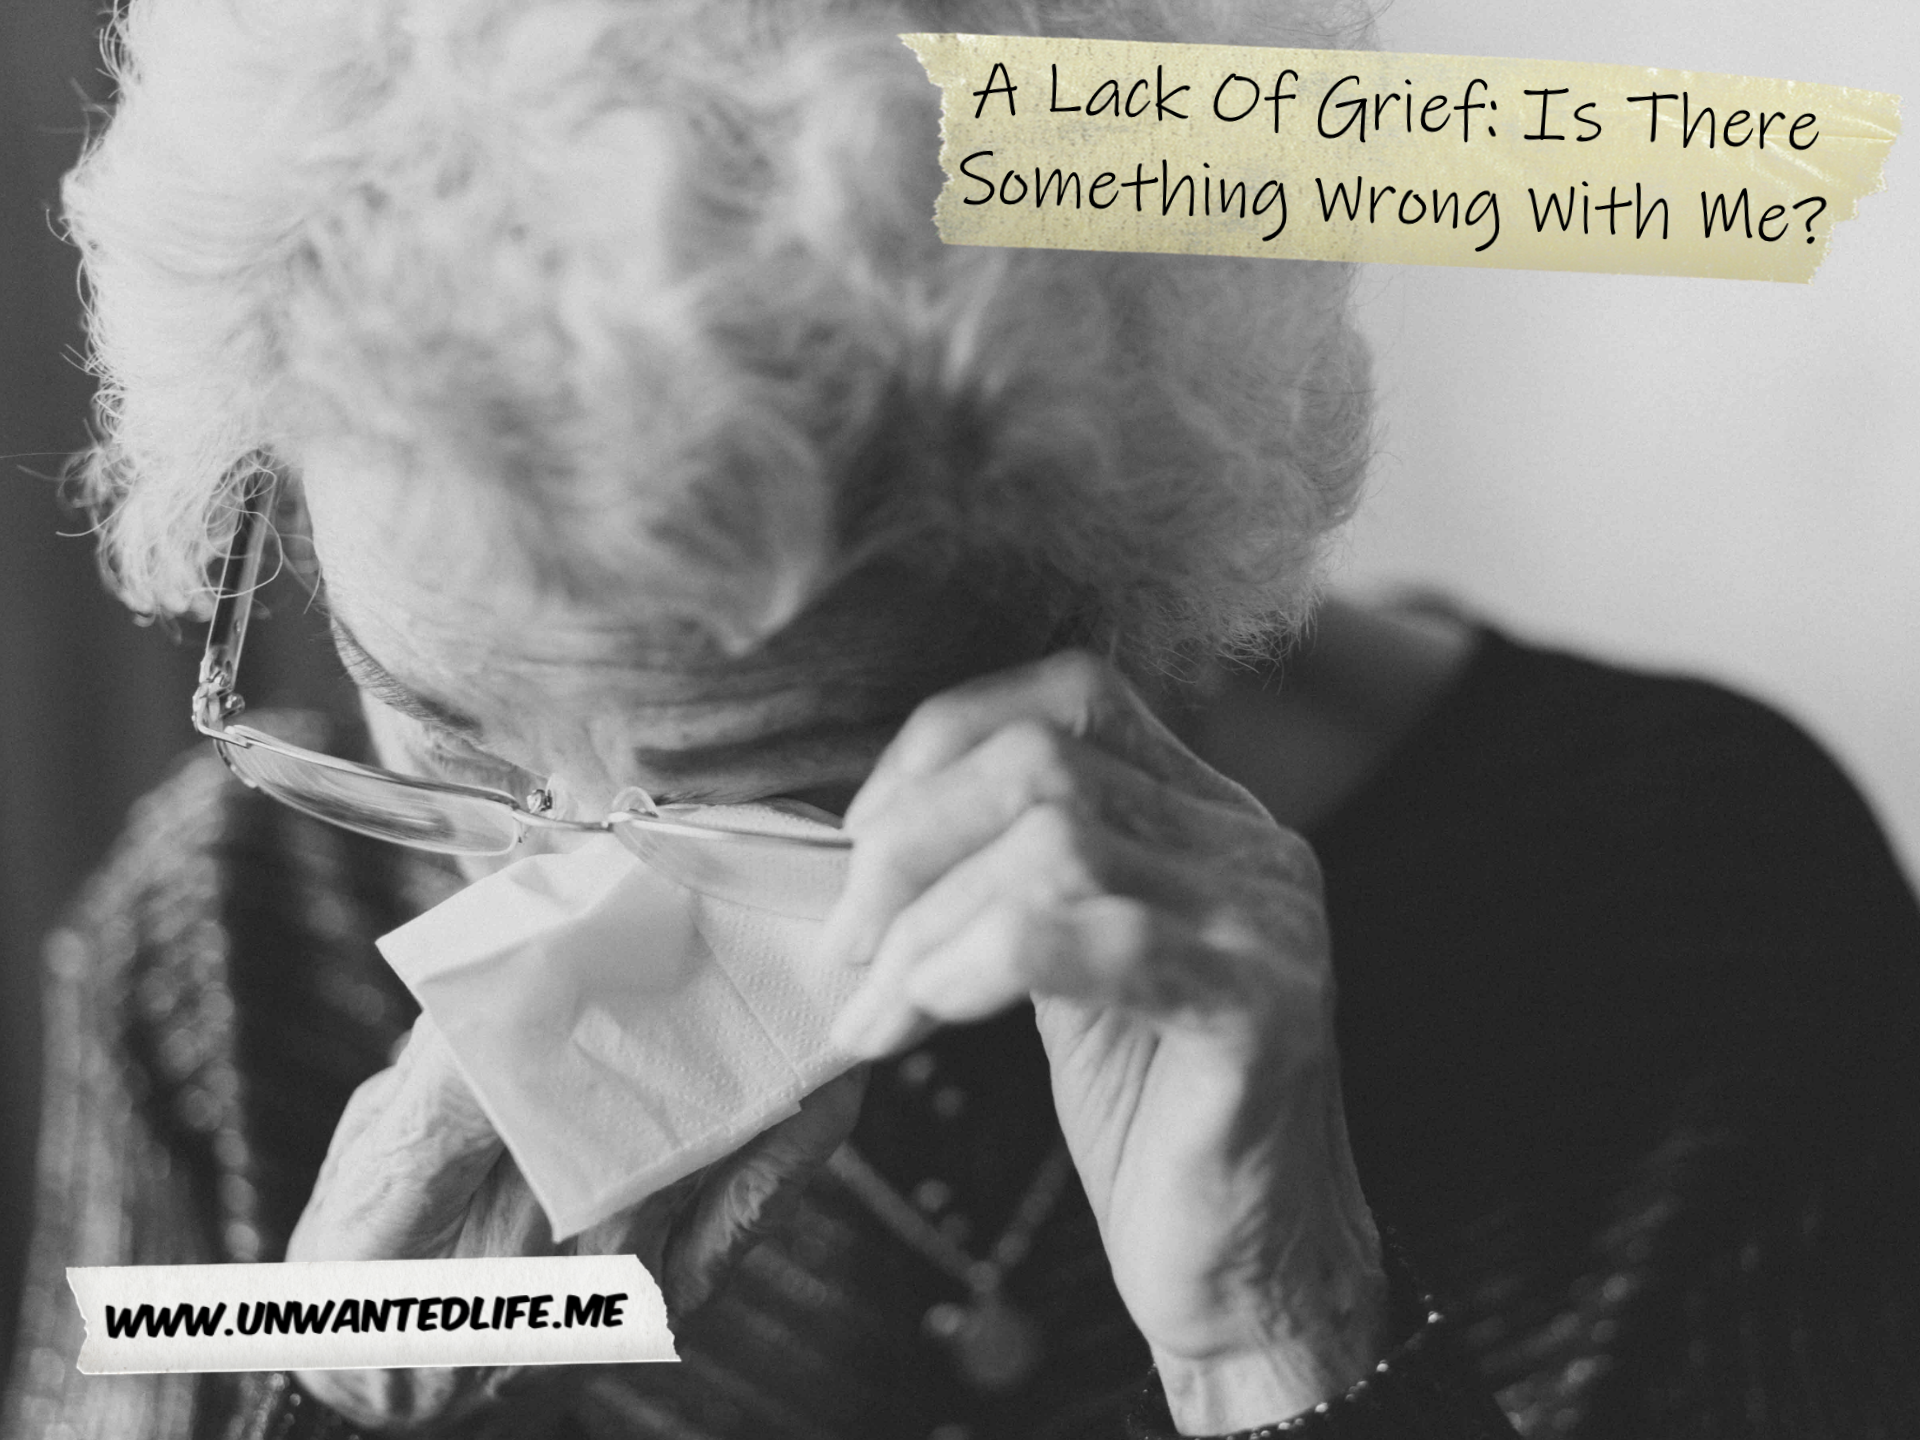 A black and white photo of an elderly white lady removing her glasses to wipe away tears with the article title - A Lack Of Grief: Is There Something Wrong With Me? - in the top right corner